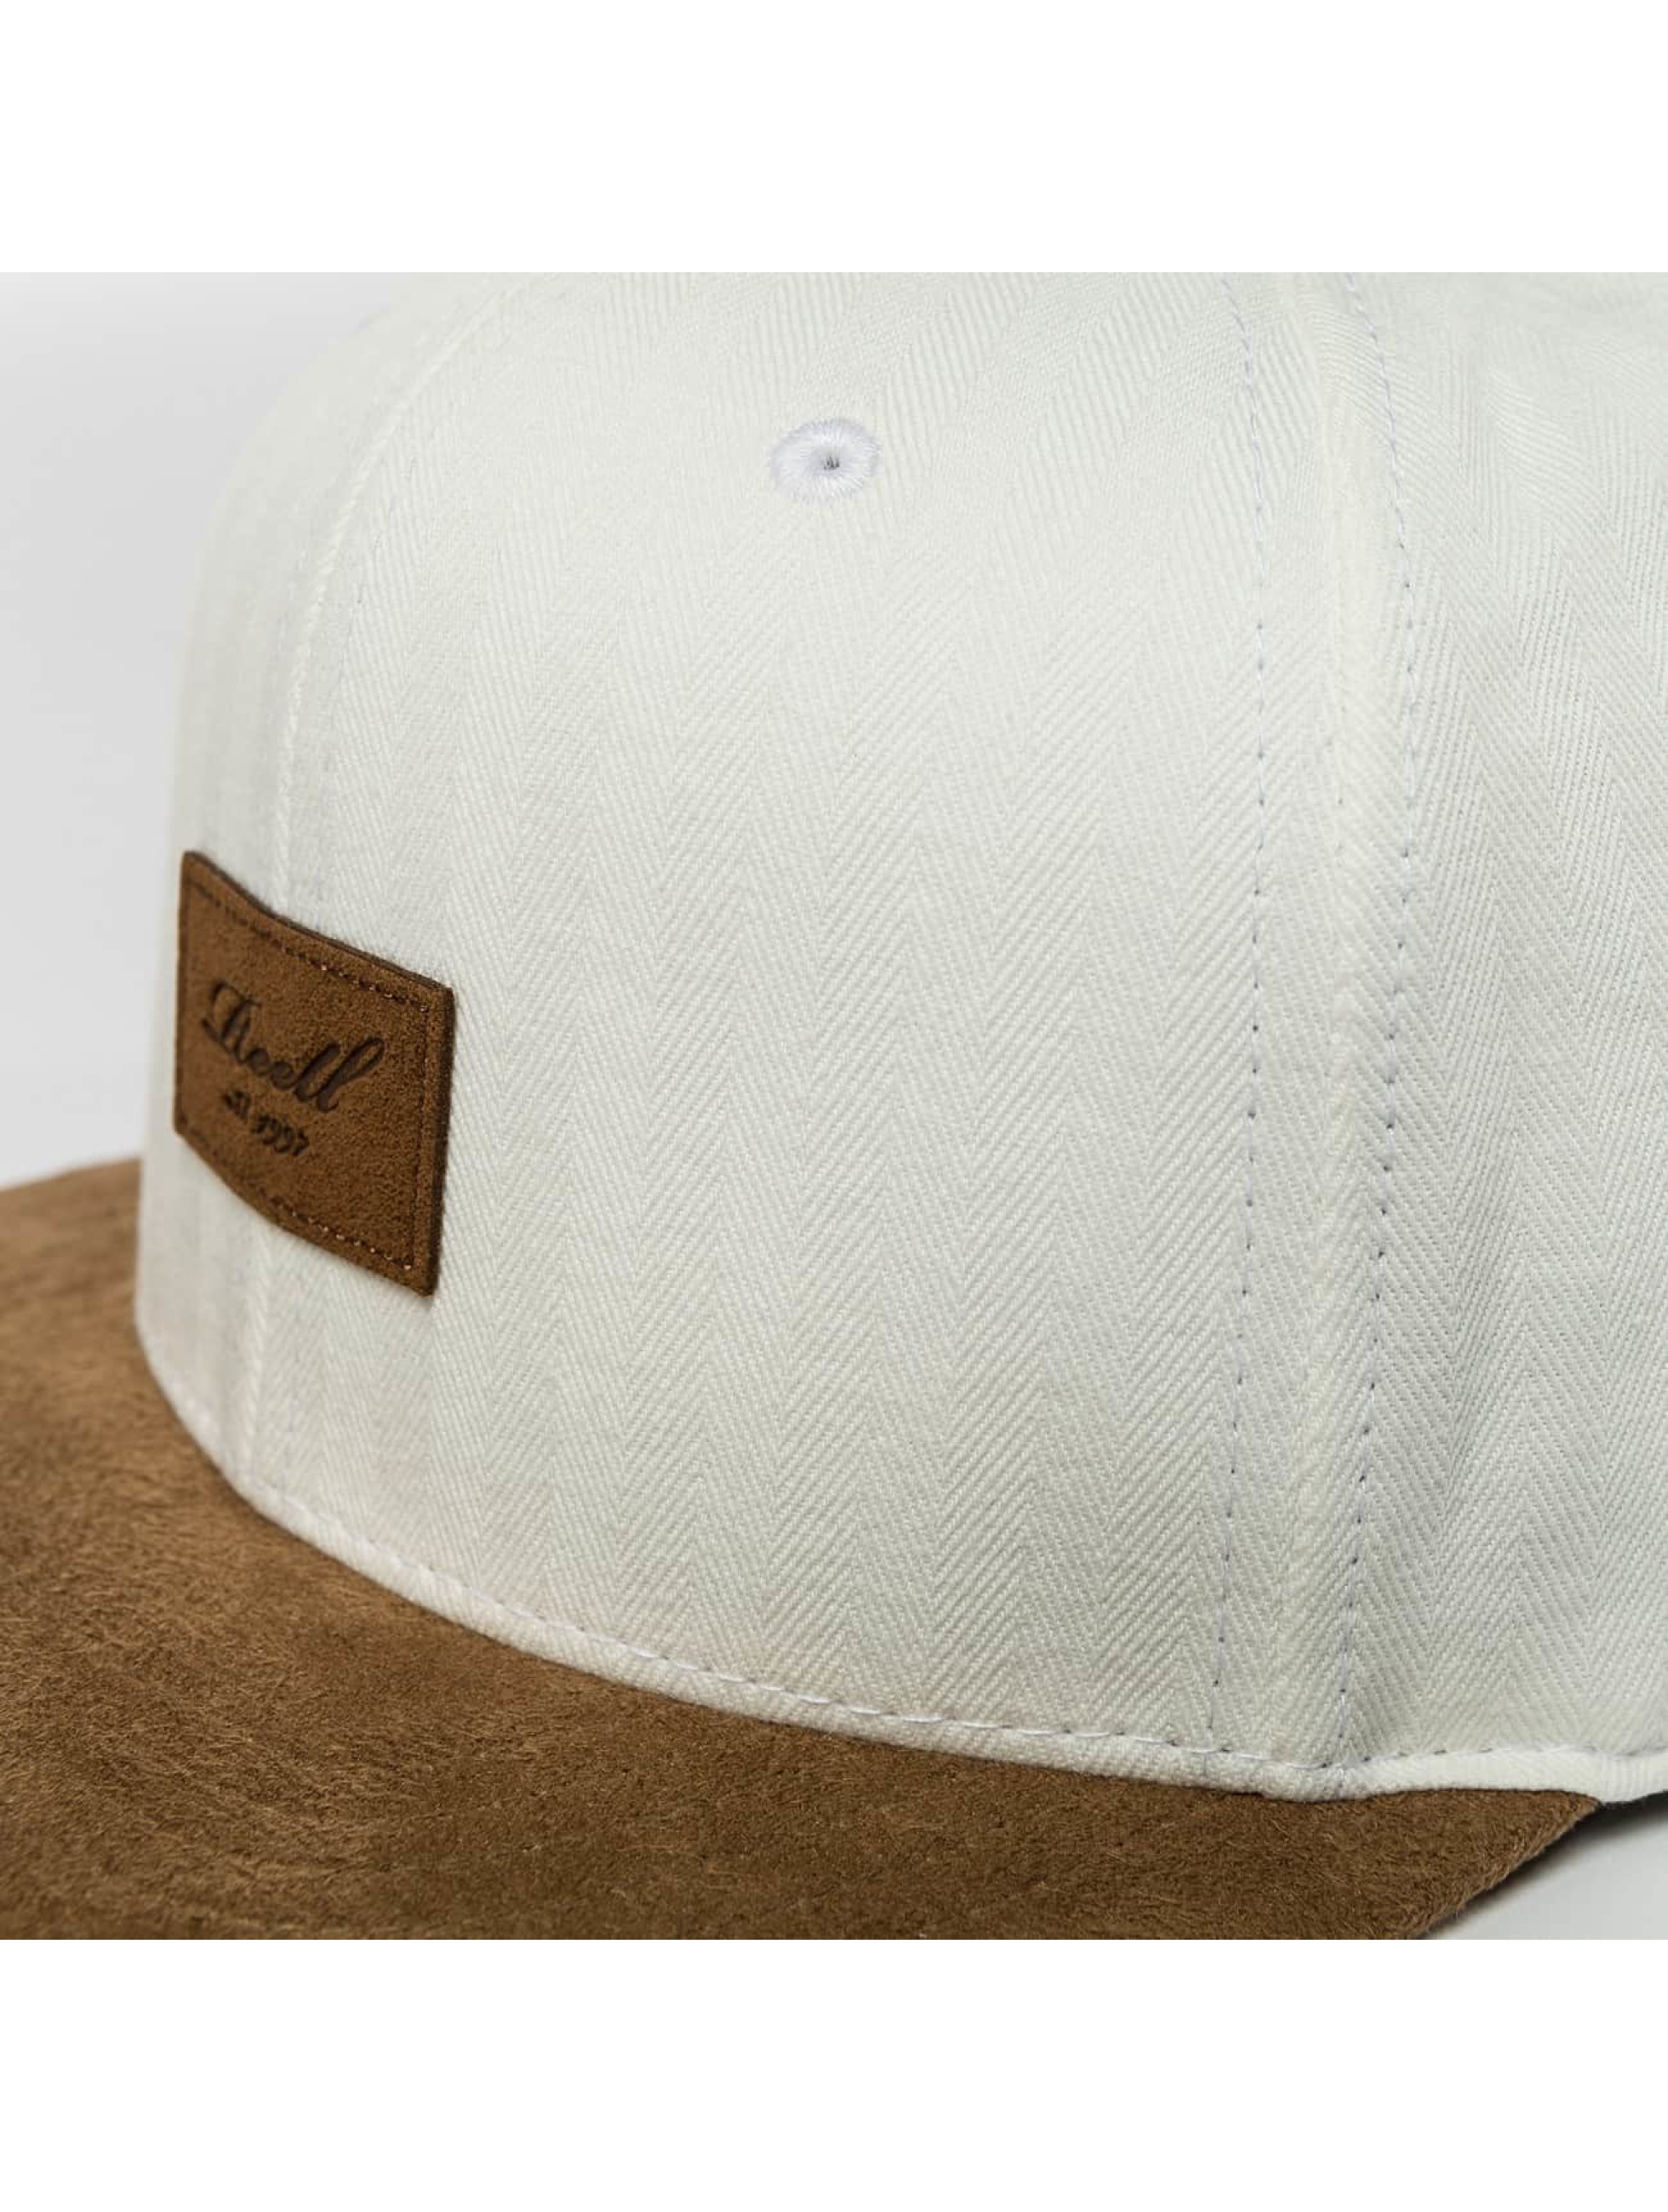 Reell Jeans Snapback Caps Suede bílý